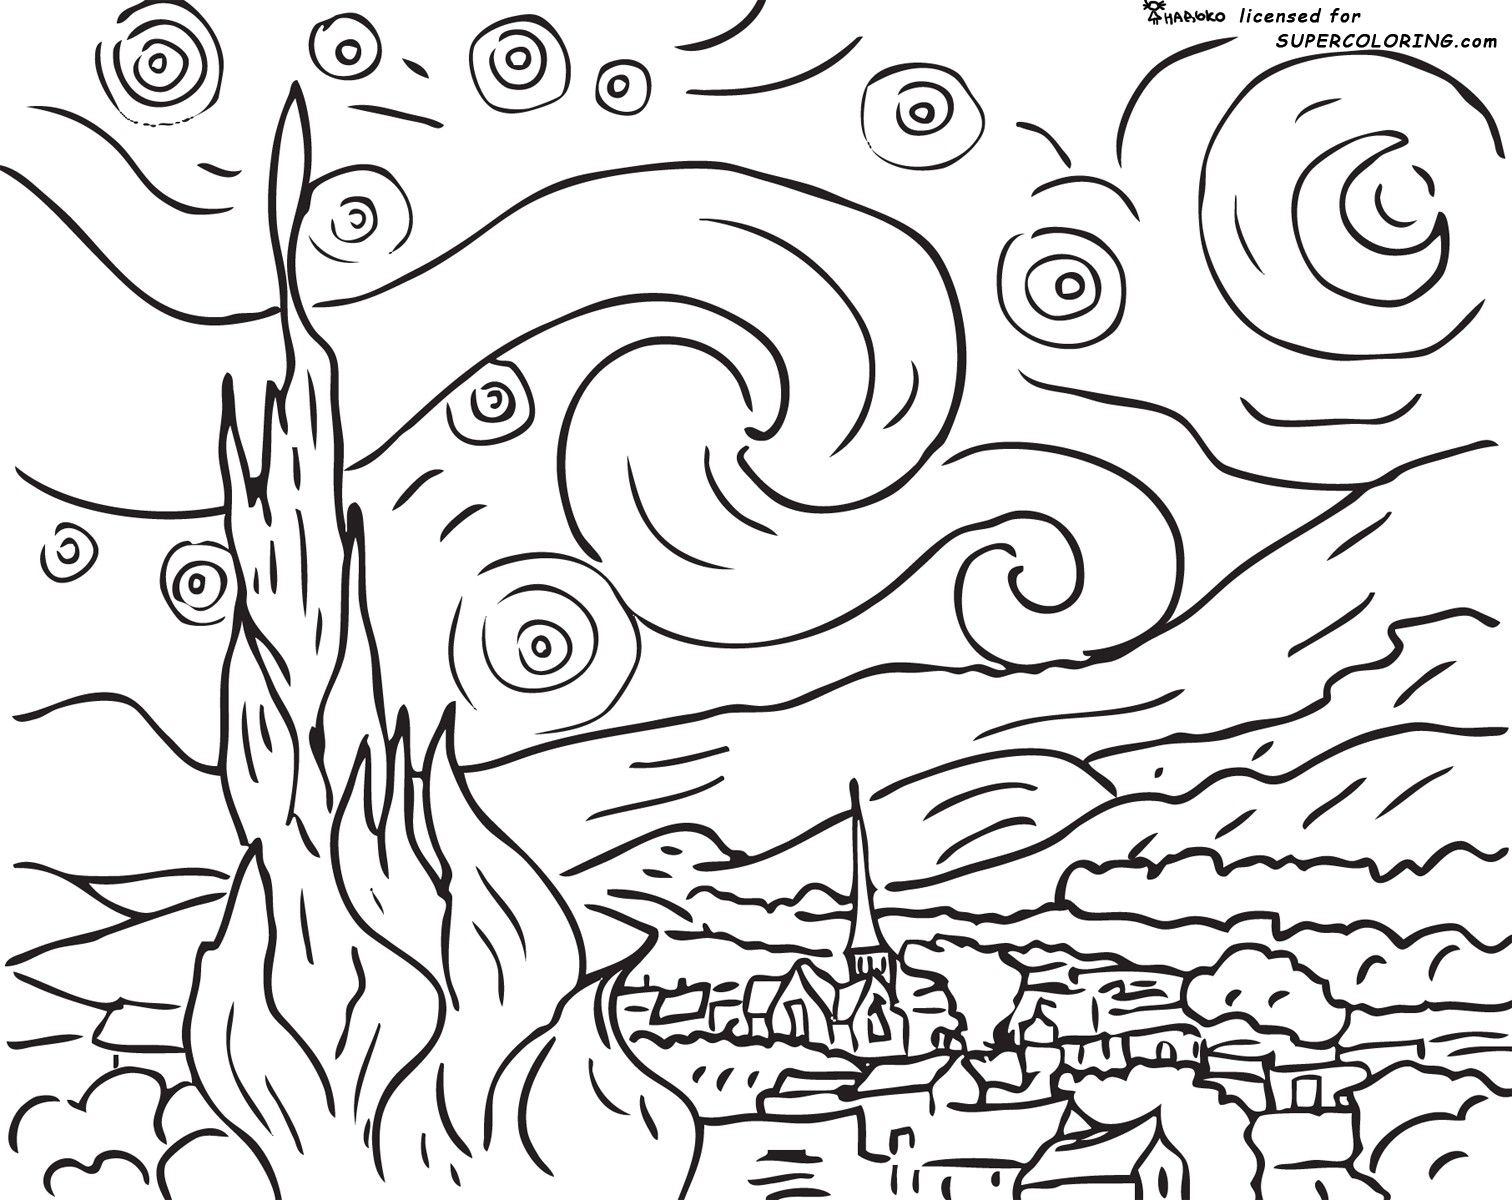 awesome coloring pages - photo#43